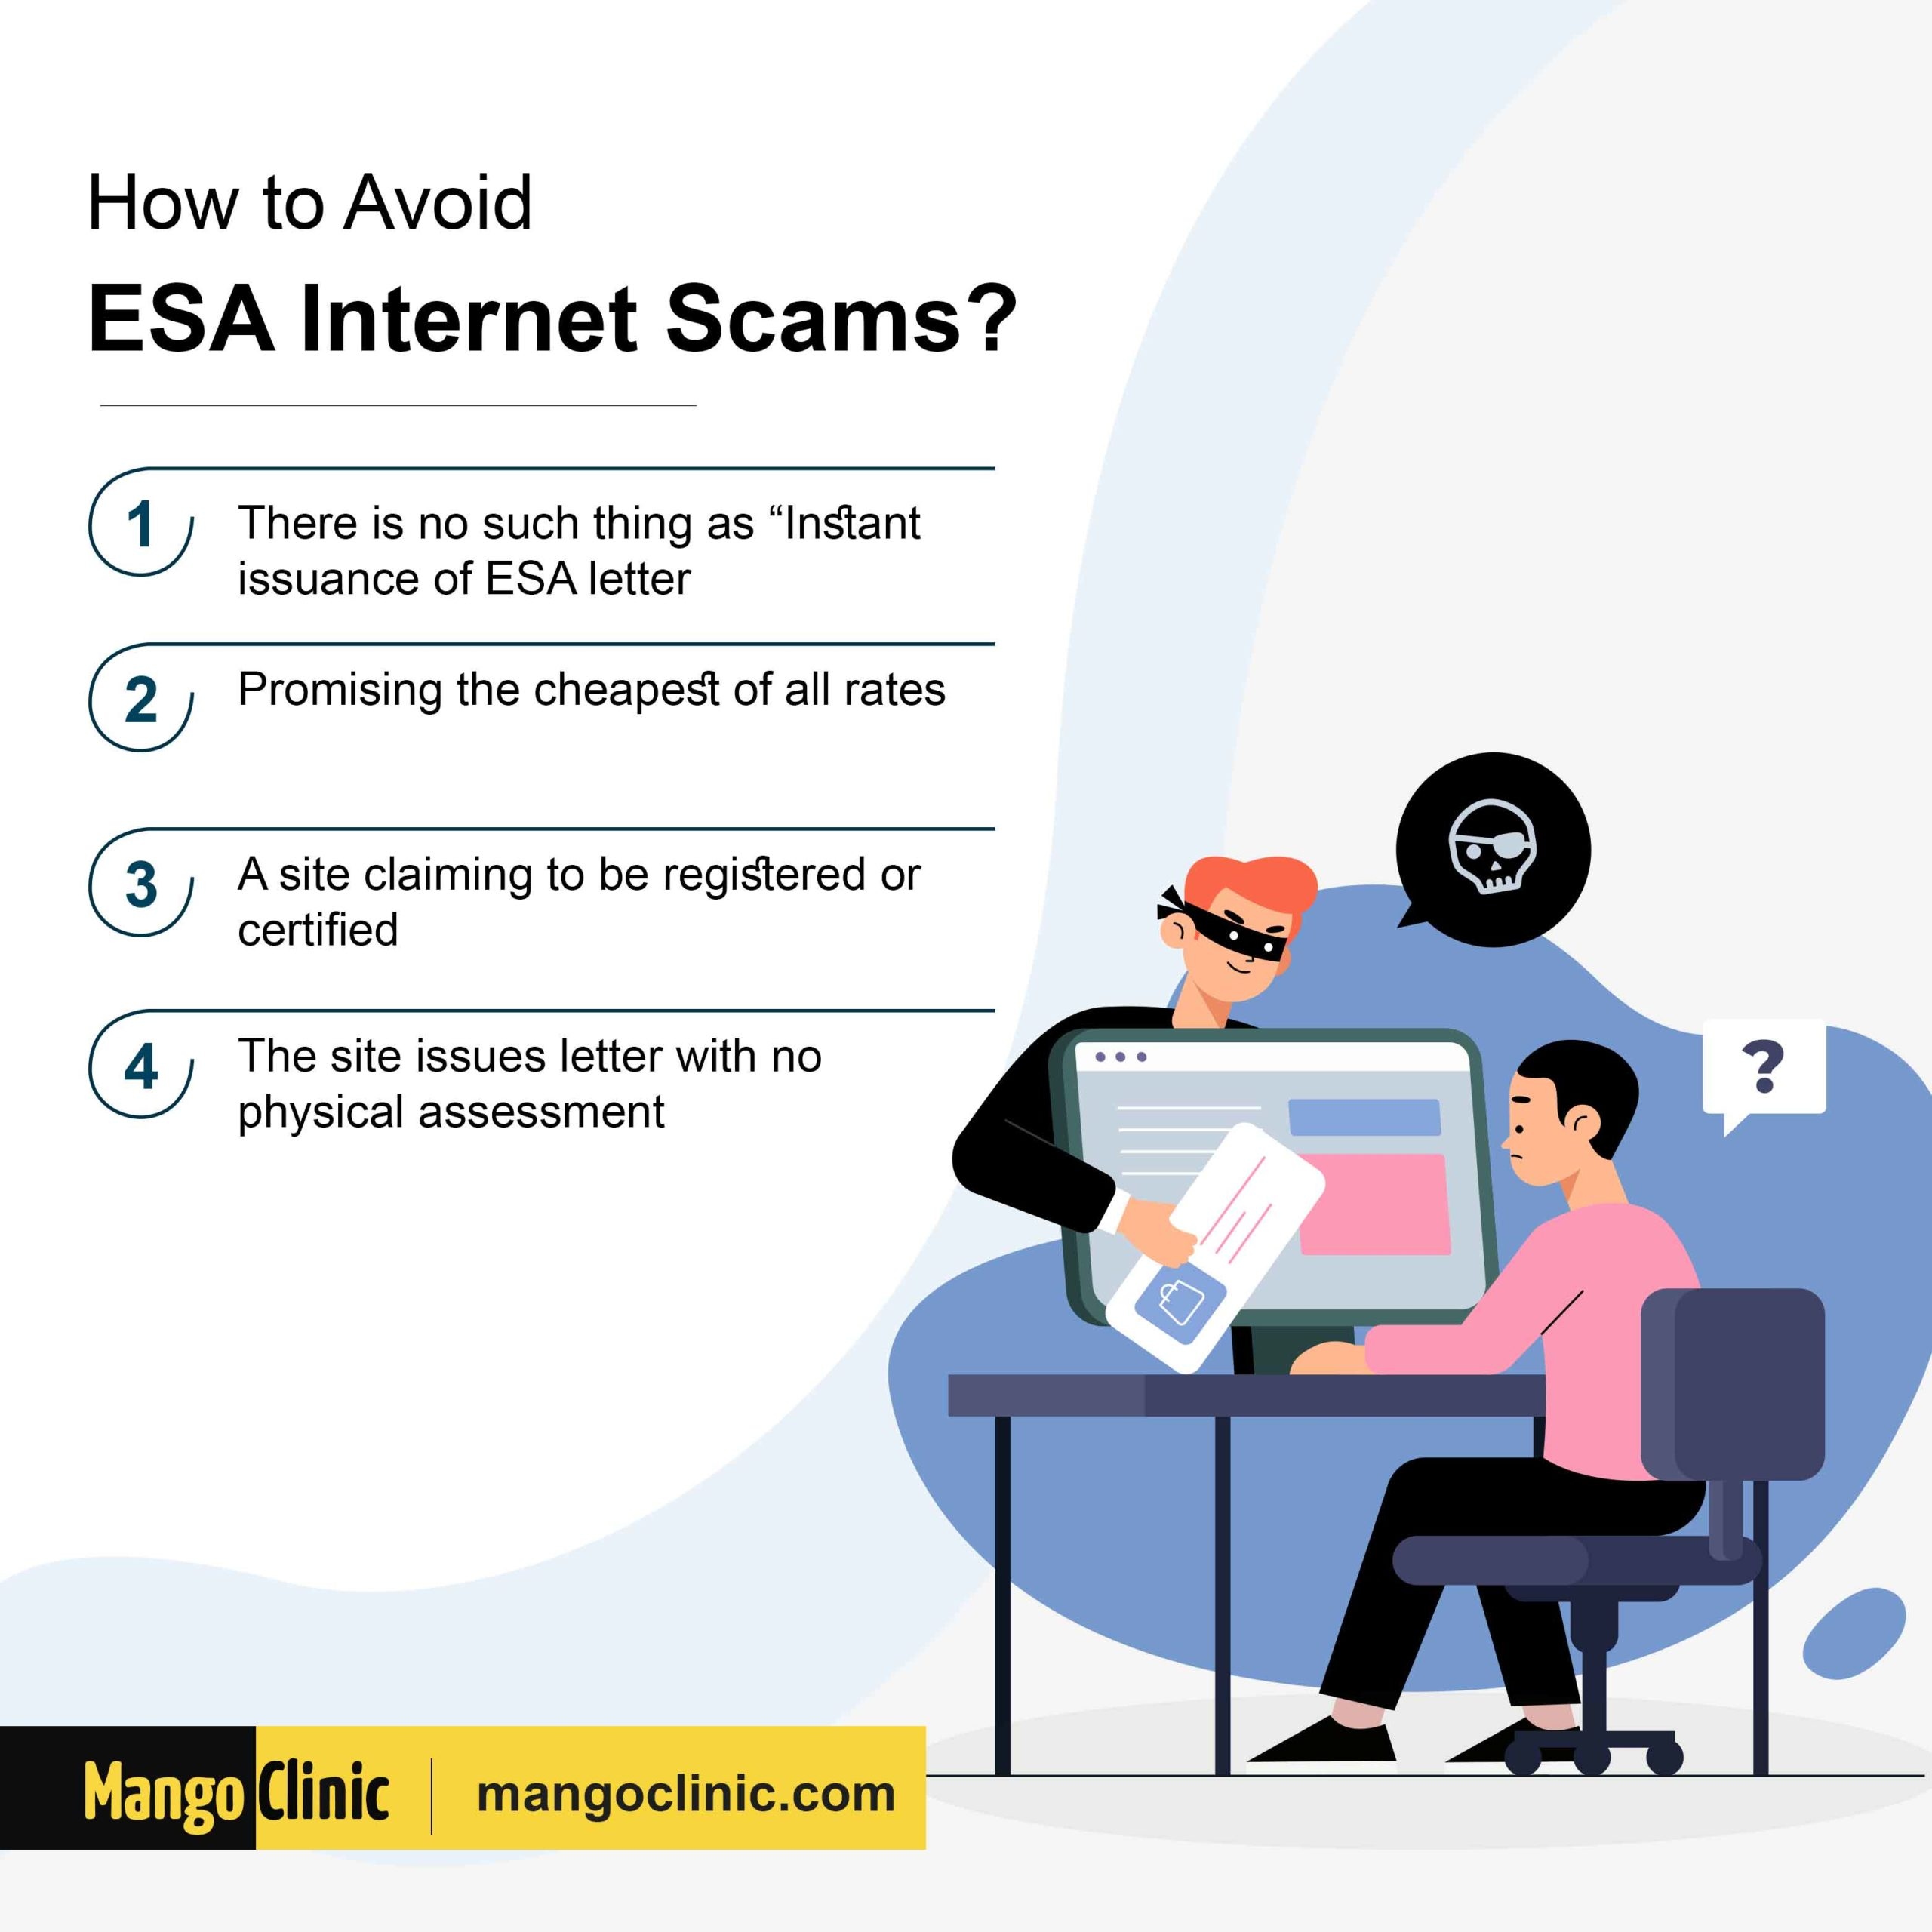 How to avoid ESA internet scams